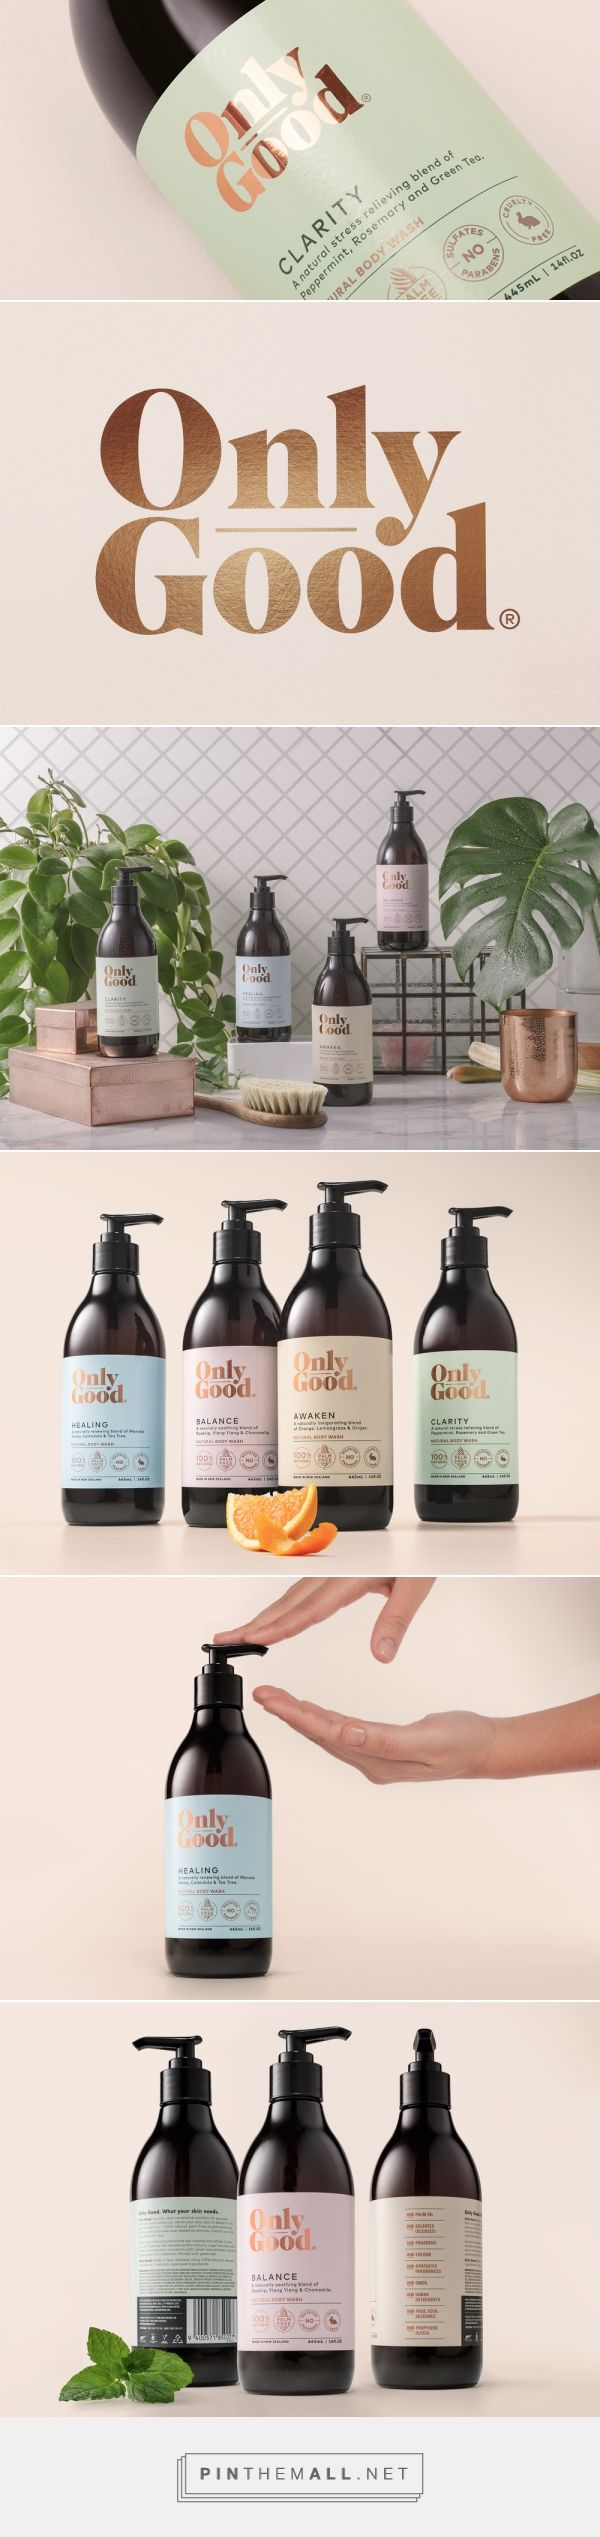 Only Good — The Dieline - Branding & Packaging... - a grouped images picture - Pin Them All